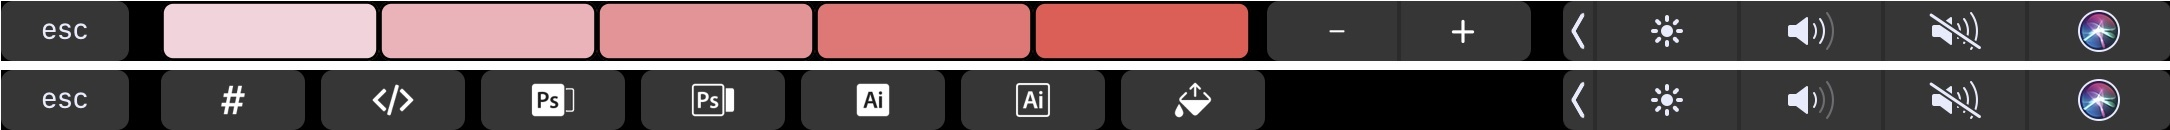 Aquarelo's contextual Touch Bar support.